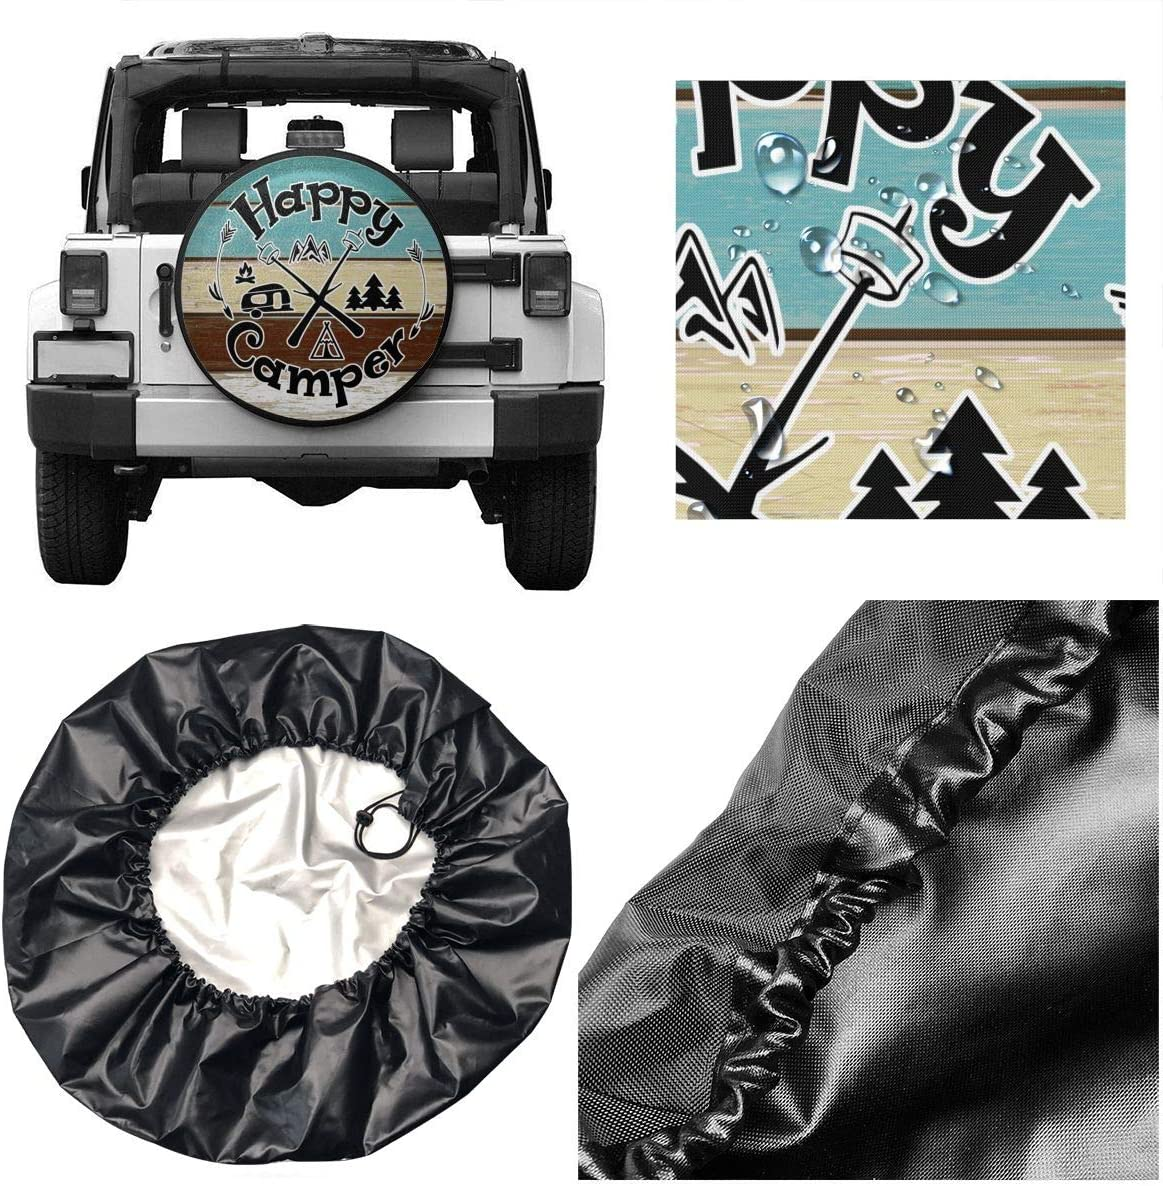 DeckrLP Car Tire Cover Lifeguard Stamp Logo Waterproof Spare Wheel Tire Cover for SUV Truck Trailer RV and Various Vehicles 14-17inch